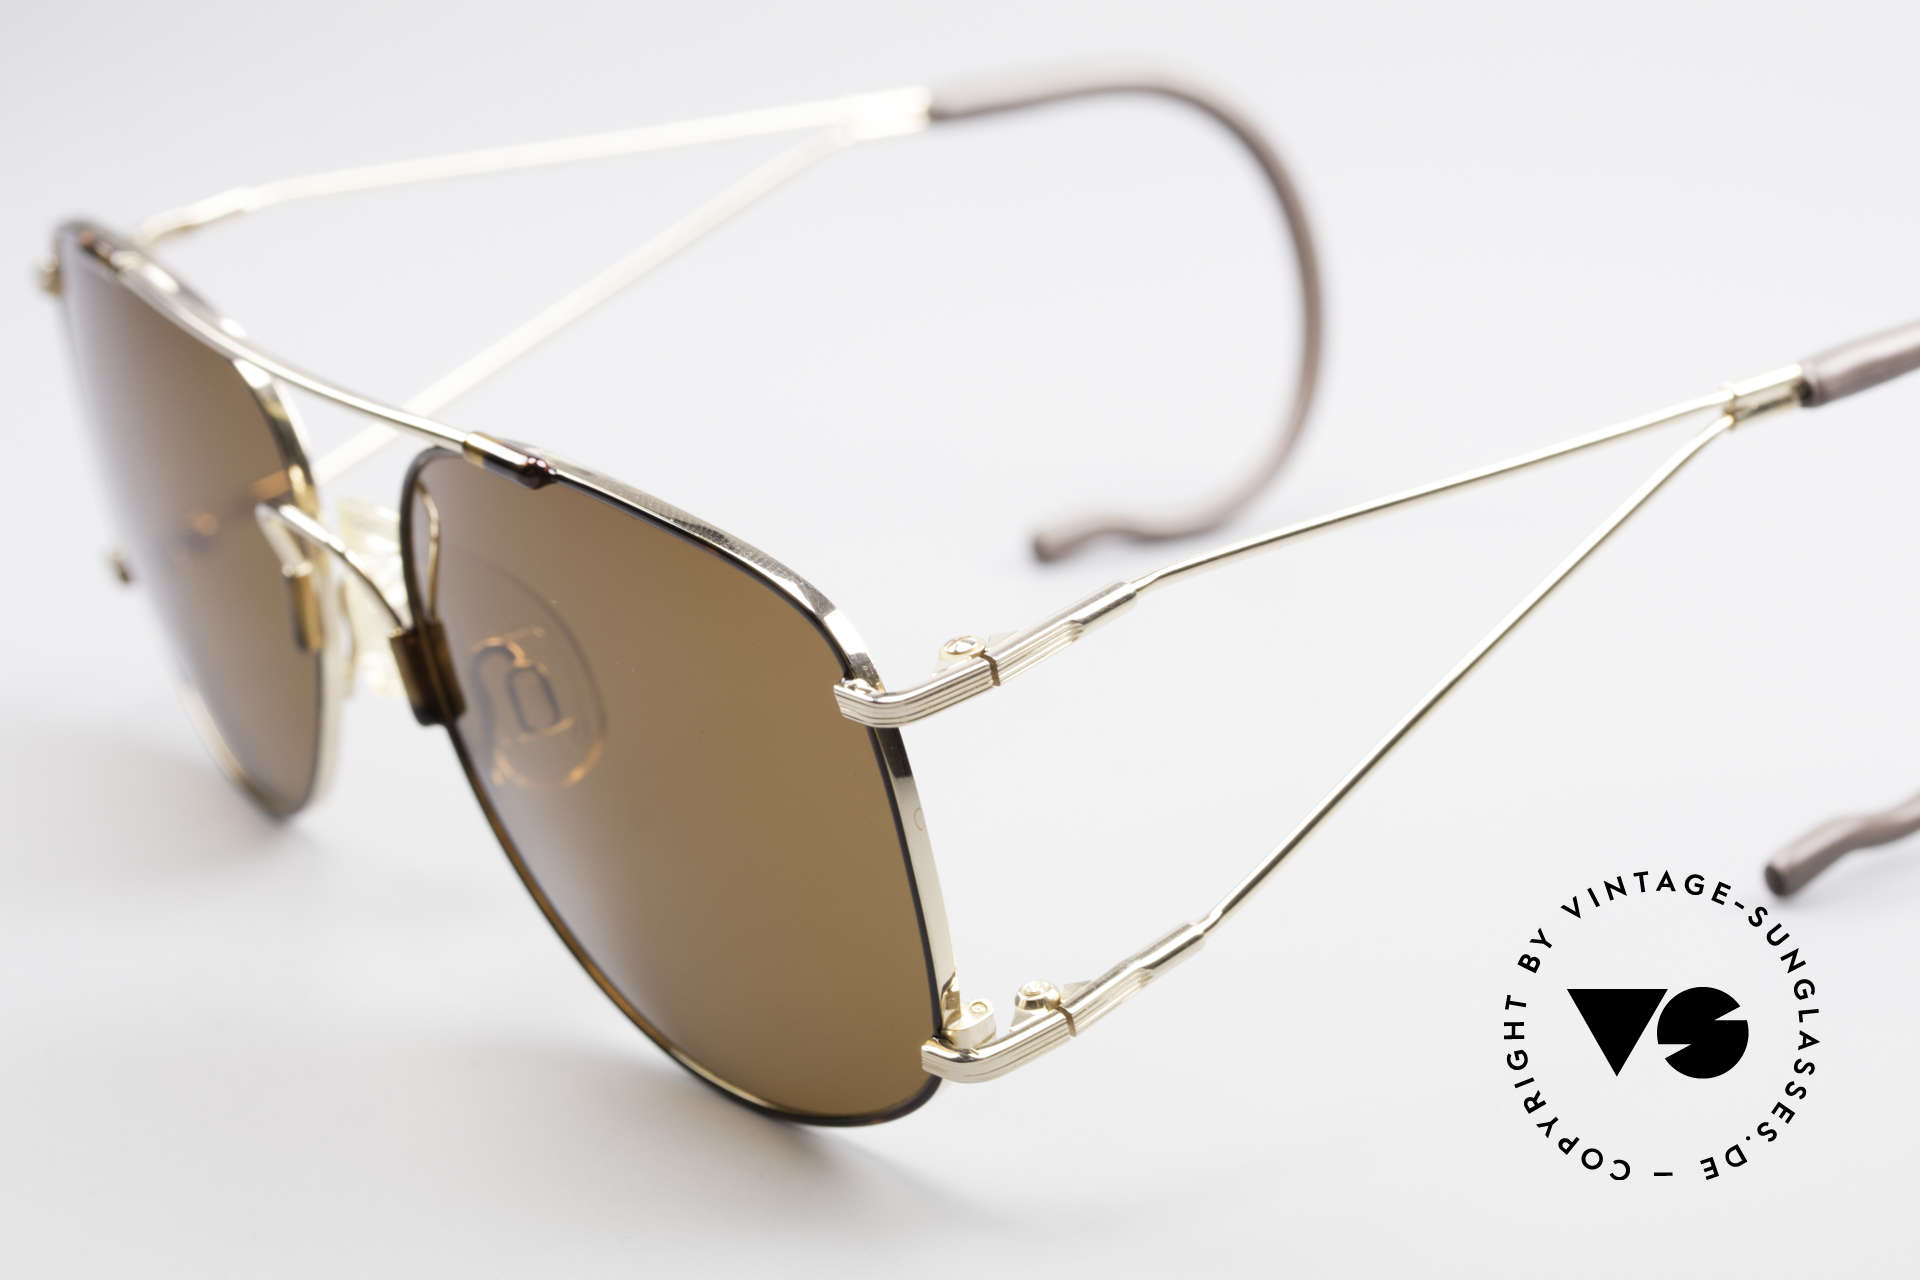 Neostyle Sunsport 1501 Titanflex Vintage Sunglasses, after deformation, the frame returns to orig. form!, Made for Men